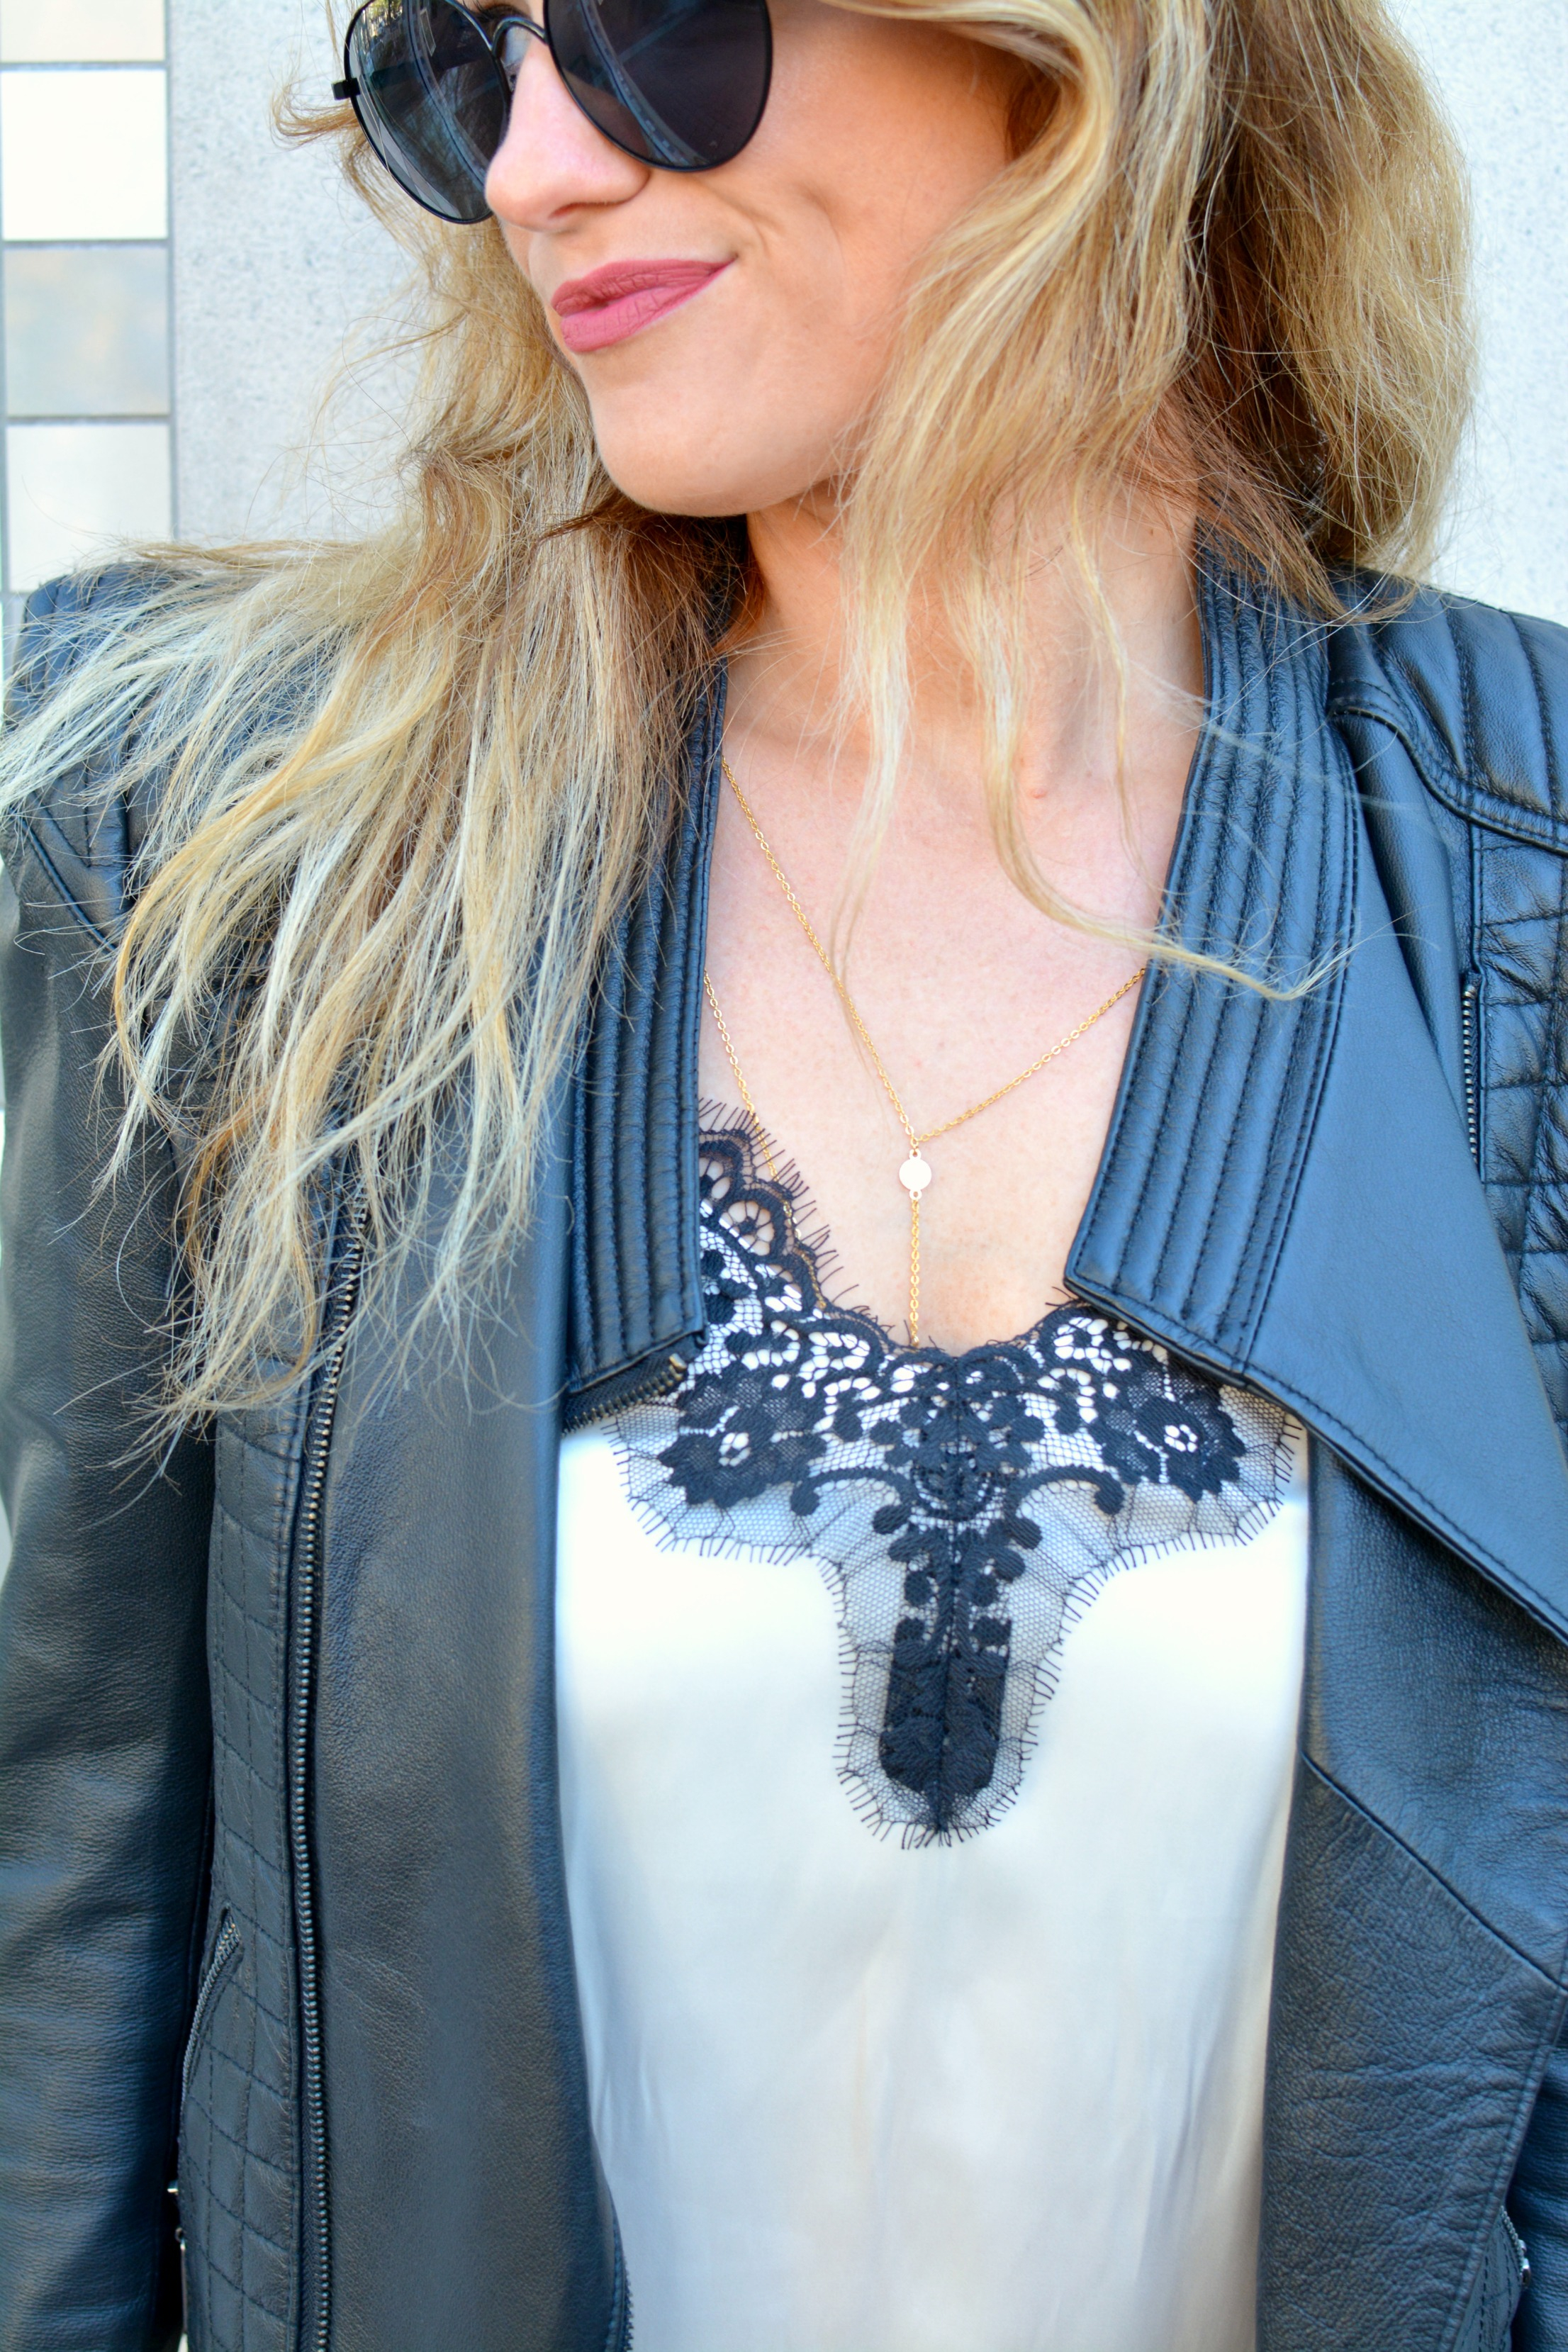 Ashley from LSR in a cream satin and black lace tank and a leather jacket